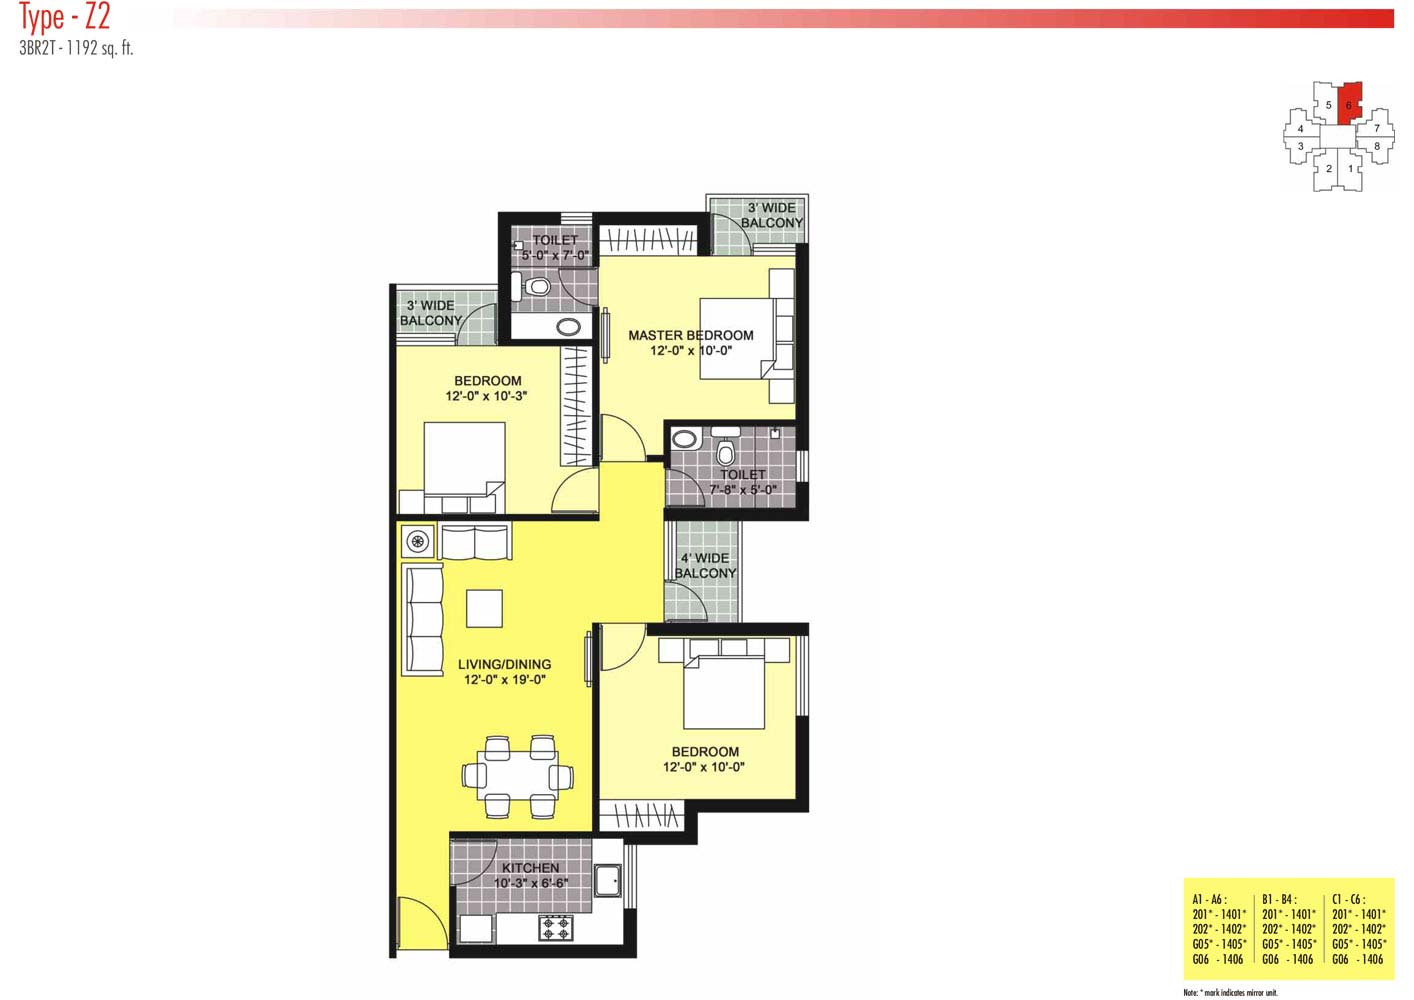 Floor Plans-3BR2T-1192 sq.ft.